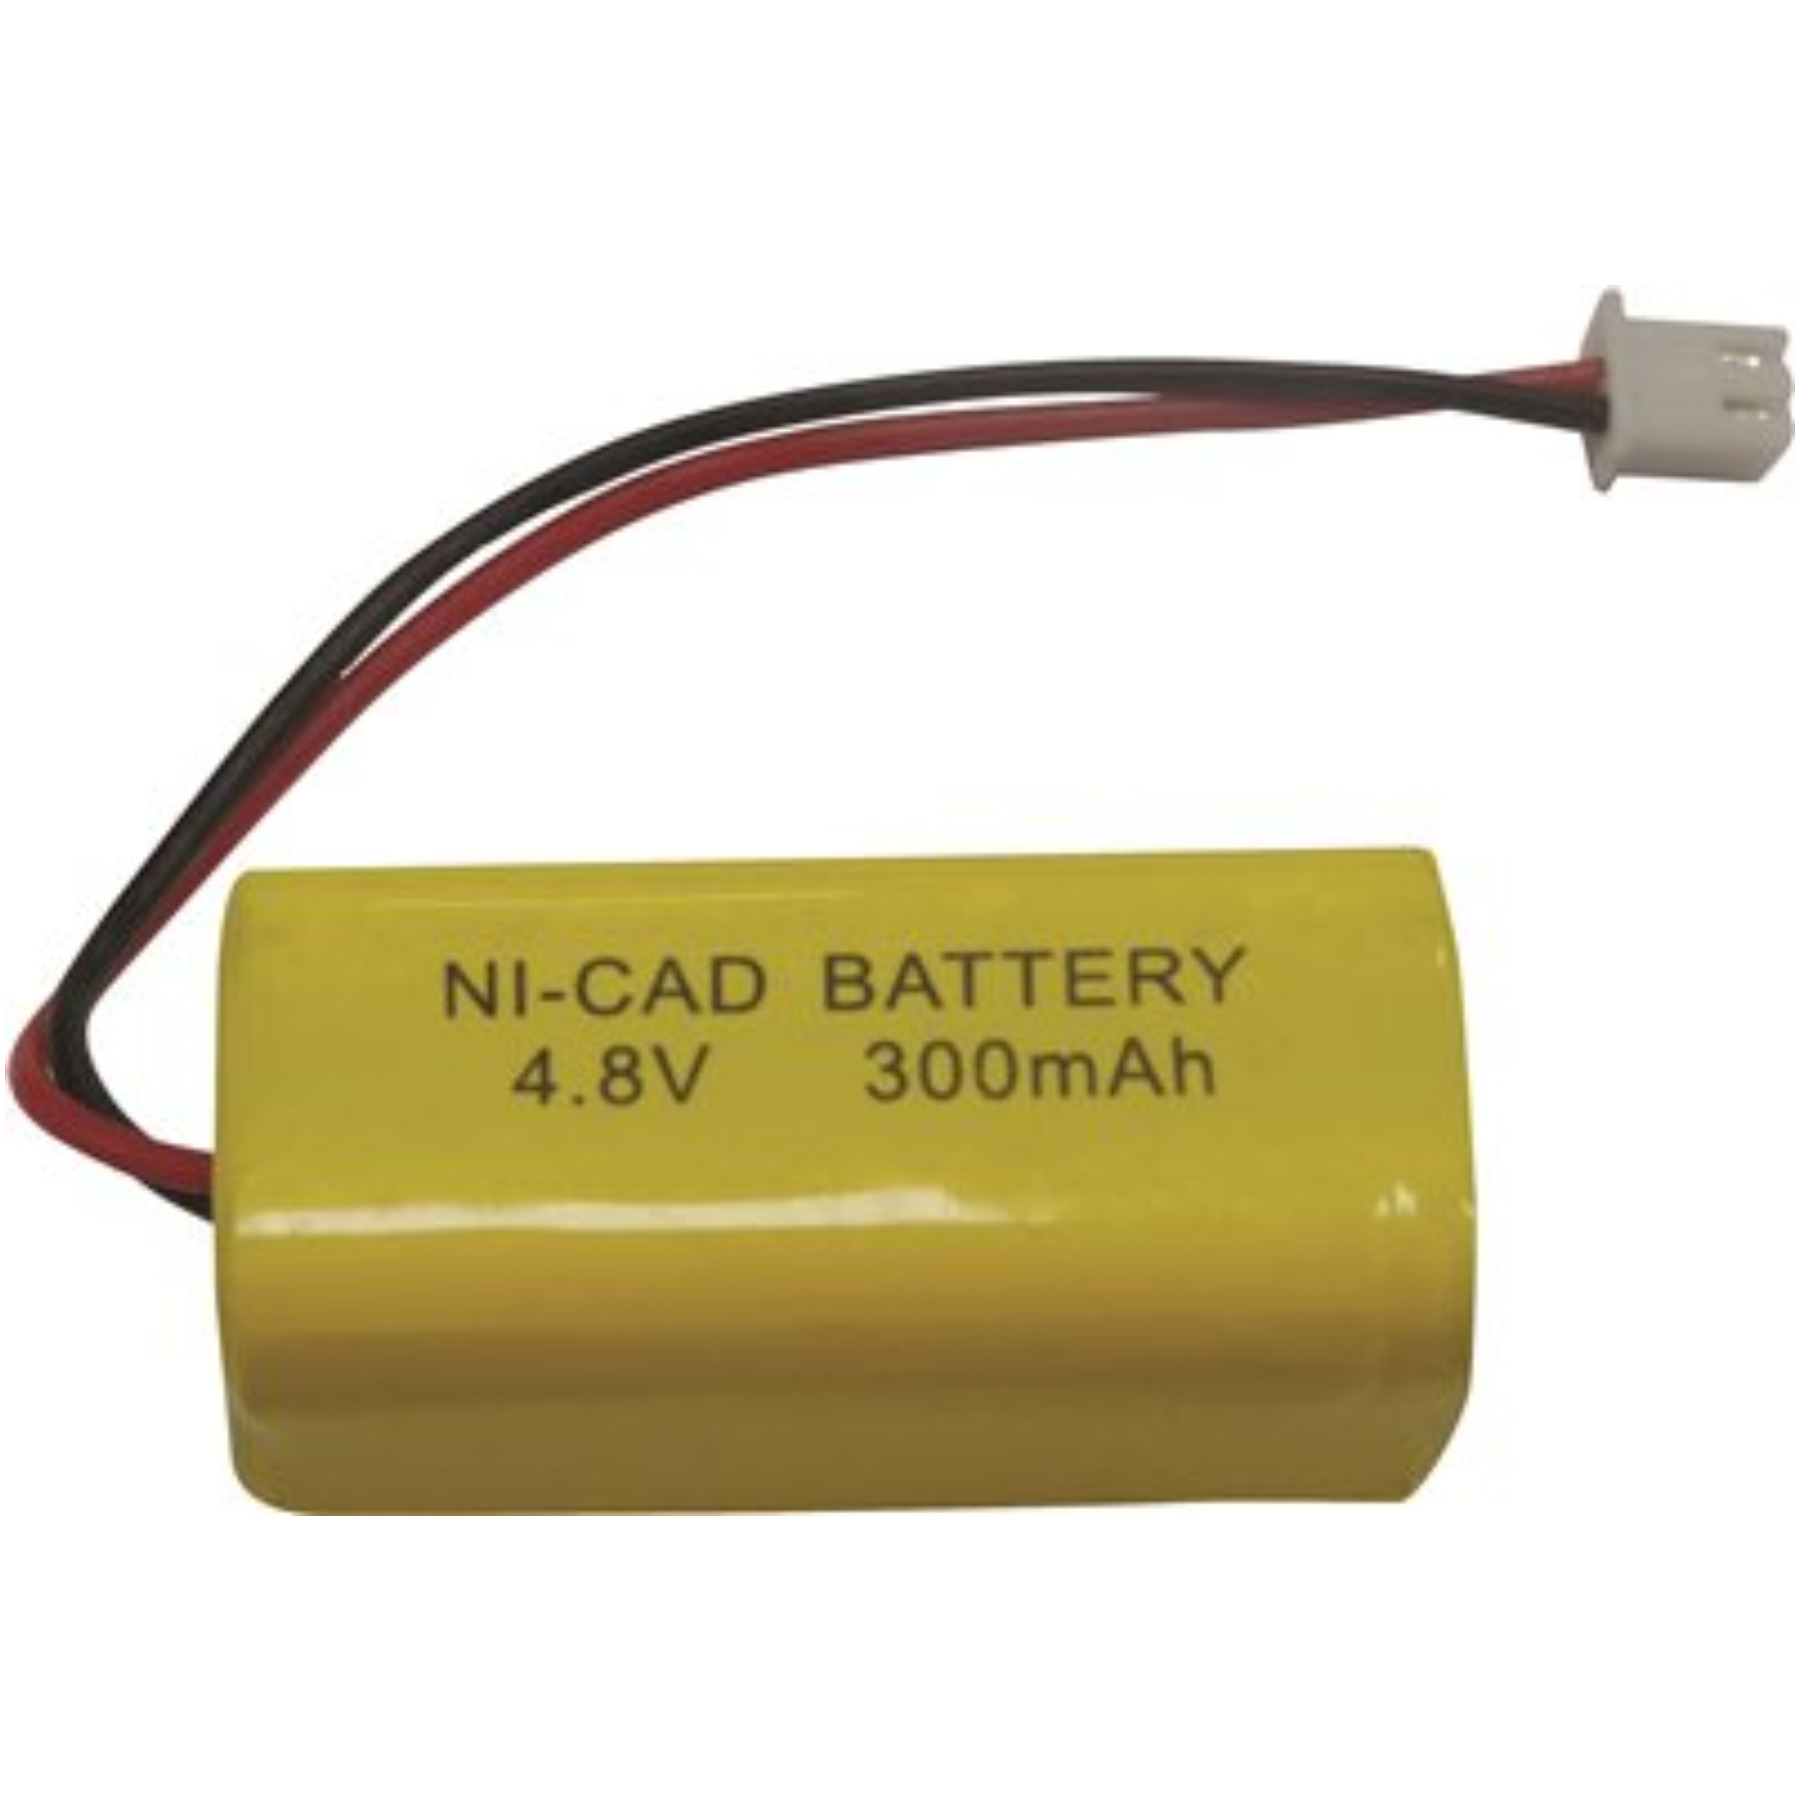 MONUMENT EXIT SIGN REPLACEMENT RECHARGEABLE NICAD BATTERY, 4.8 VOLT, 300MAH